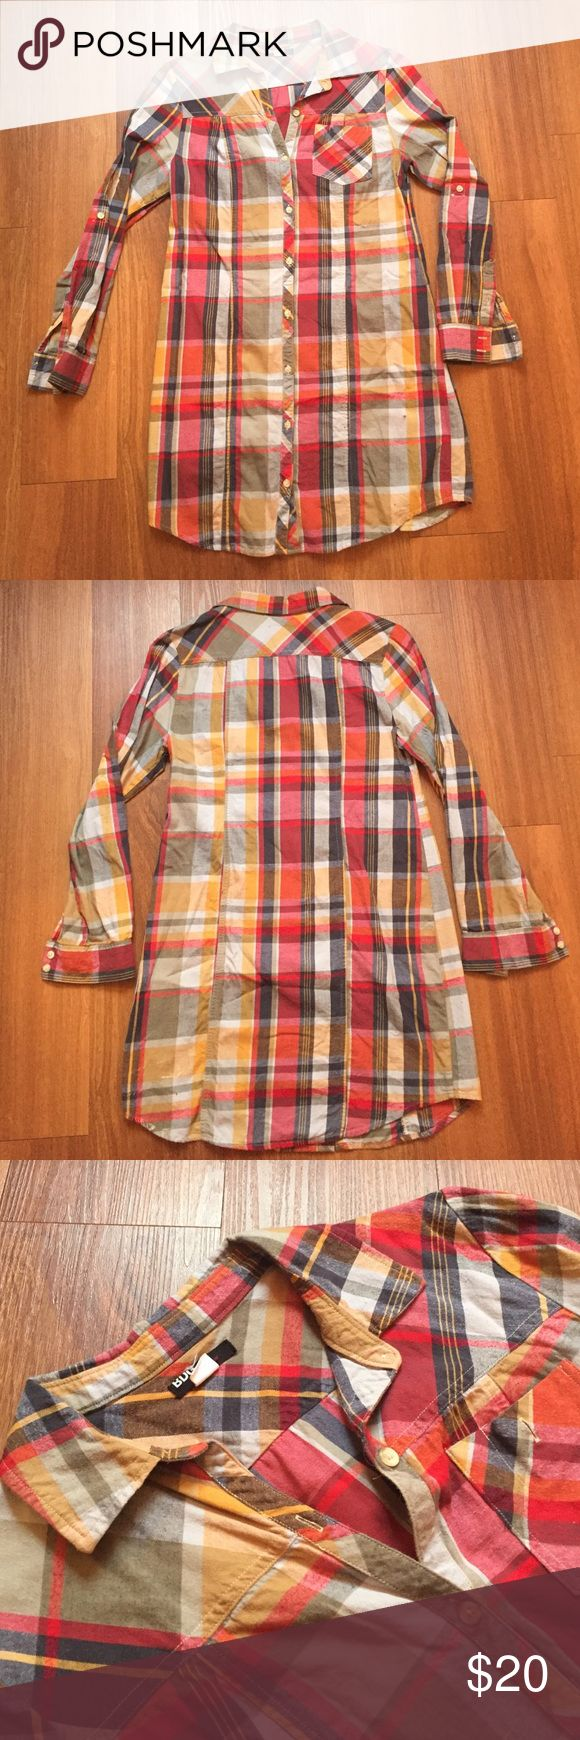 Shirt Dress❤Gorgeous plaid cotton flannel! Gorgeous plaid cotton flannel shirt dress. Hits mid thigh. Looks great with riding or cowboy boots! Comfy, high quality, and so many compliments! Make me an offer. Urban Outfitters Dresses Long Sleeve